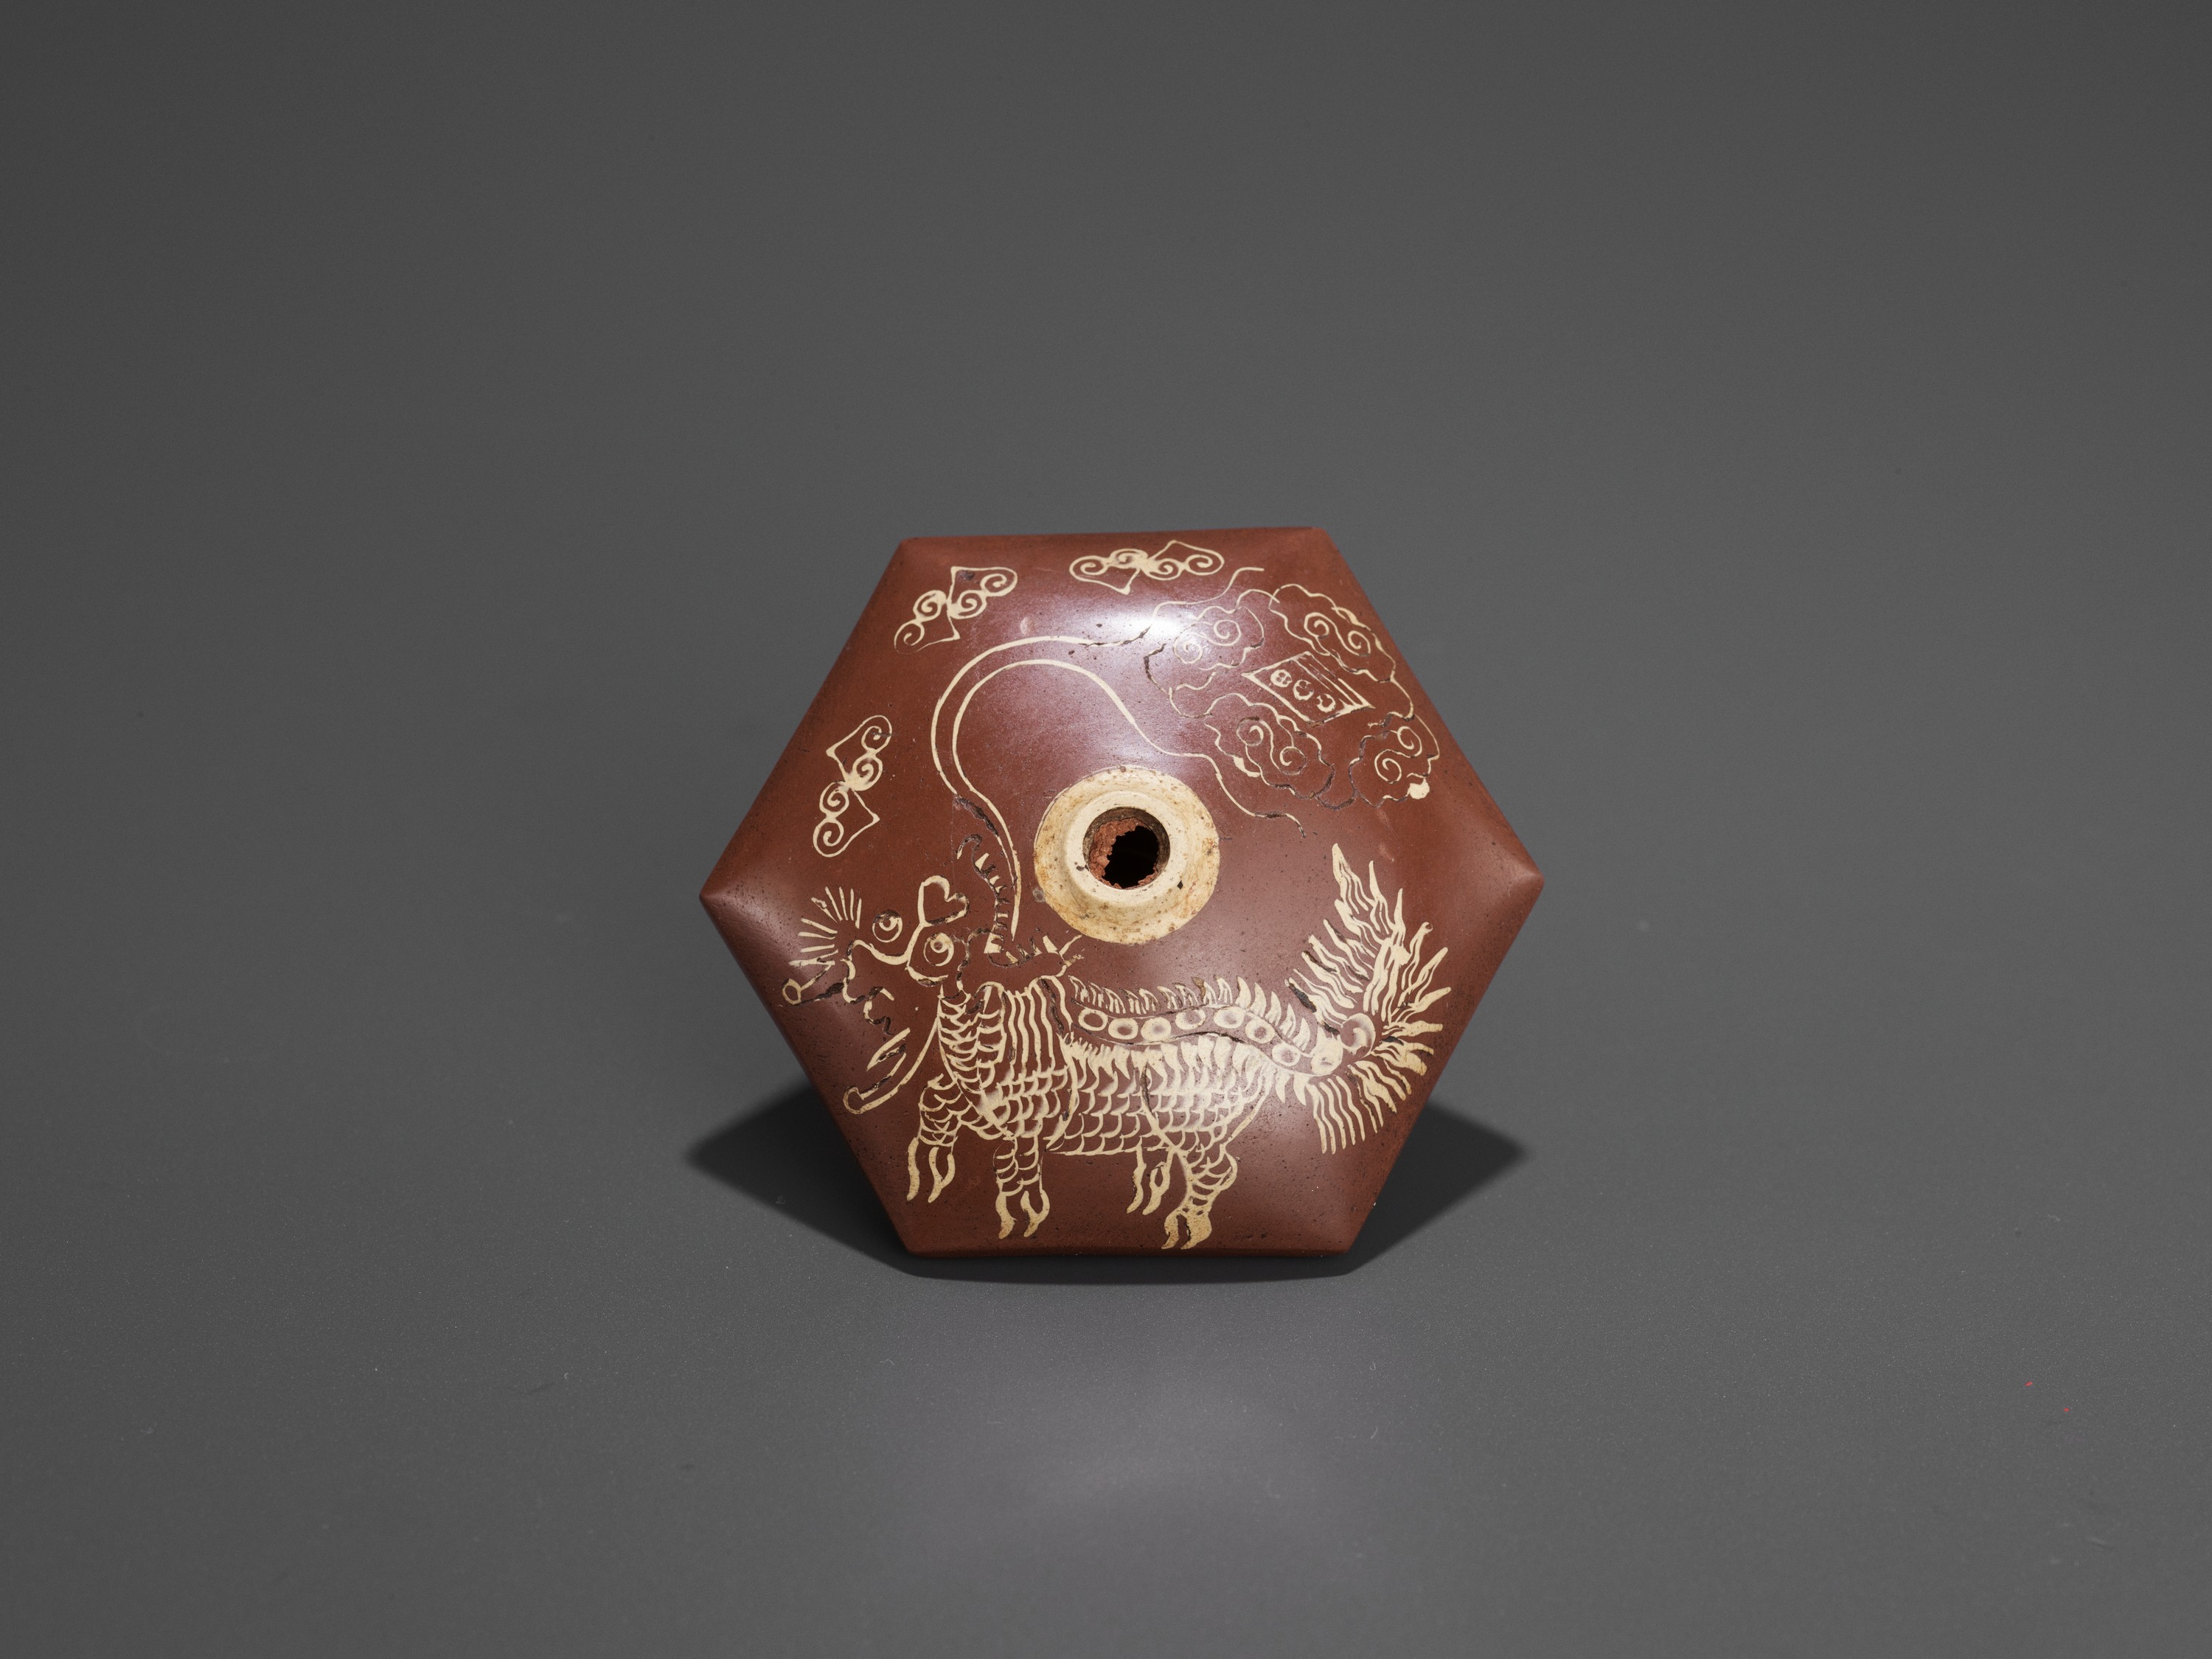 A BAMBOO OPIUM PIPE WITH HARDSTONE, SILVER AND YIXING CERAMIC FITTINGS, LATE QING TO REPUBLIC - Image 7 of 10